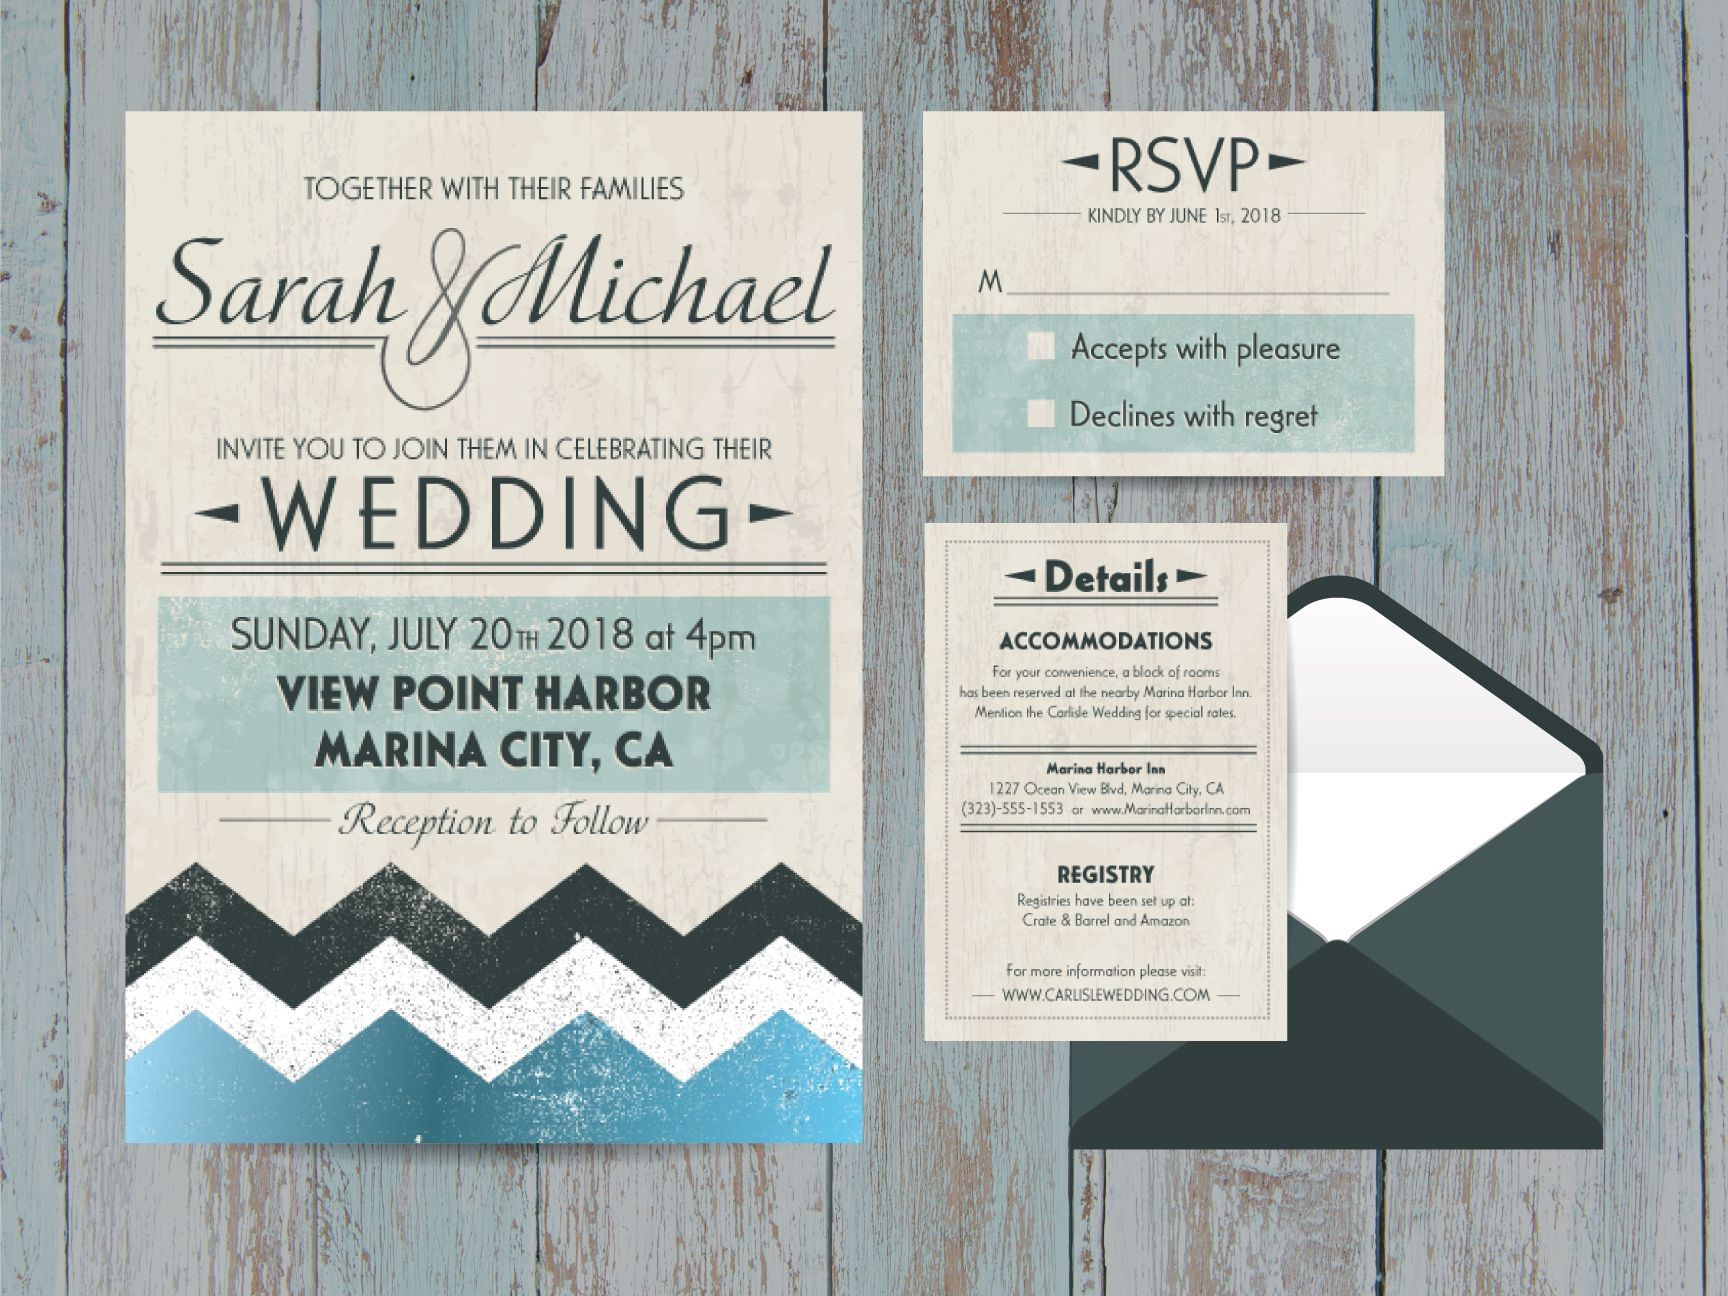 High Quality Beach Wedding Invitation DIY Printable Set  Aquatic Water Marine Event  Invites   Inexpensive   Custom Self Print Template A7 5x7   3.5x5 A1